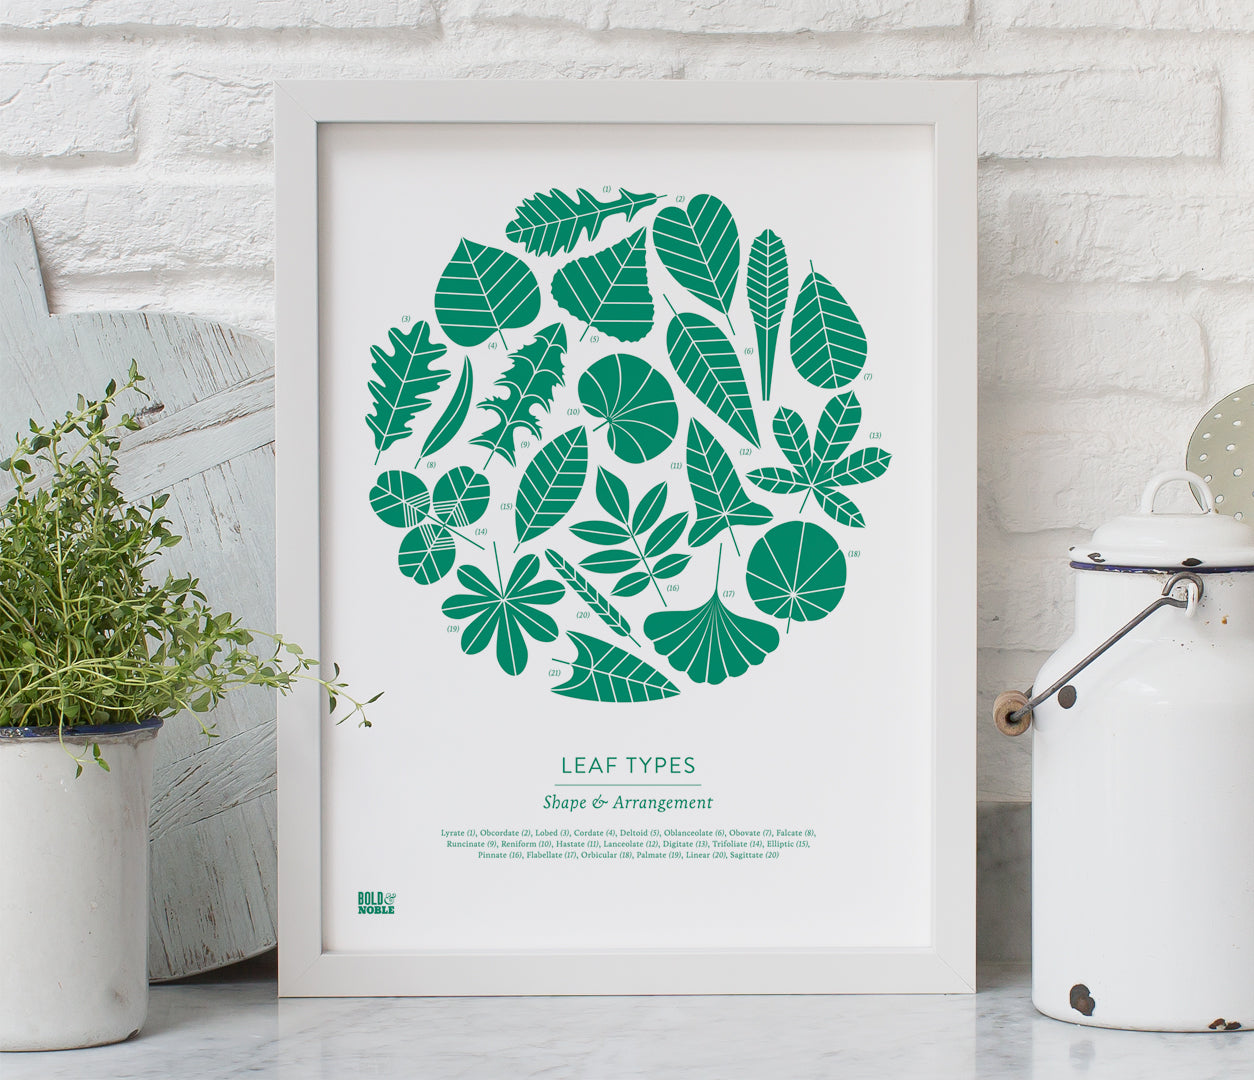 Pictures and Wall Art, Screen Printed Leaf Types Print in Emerald Green